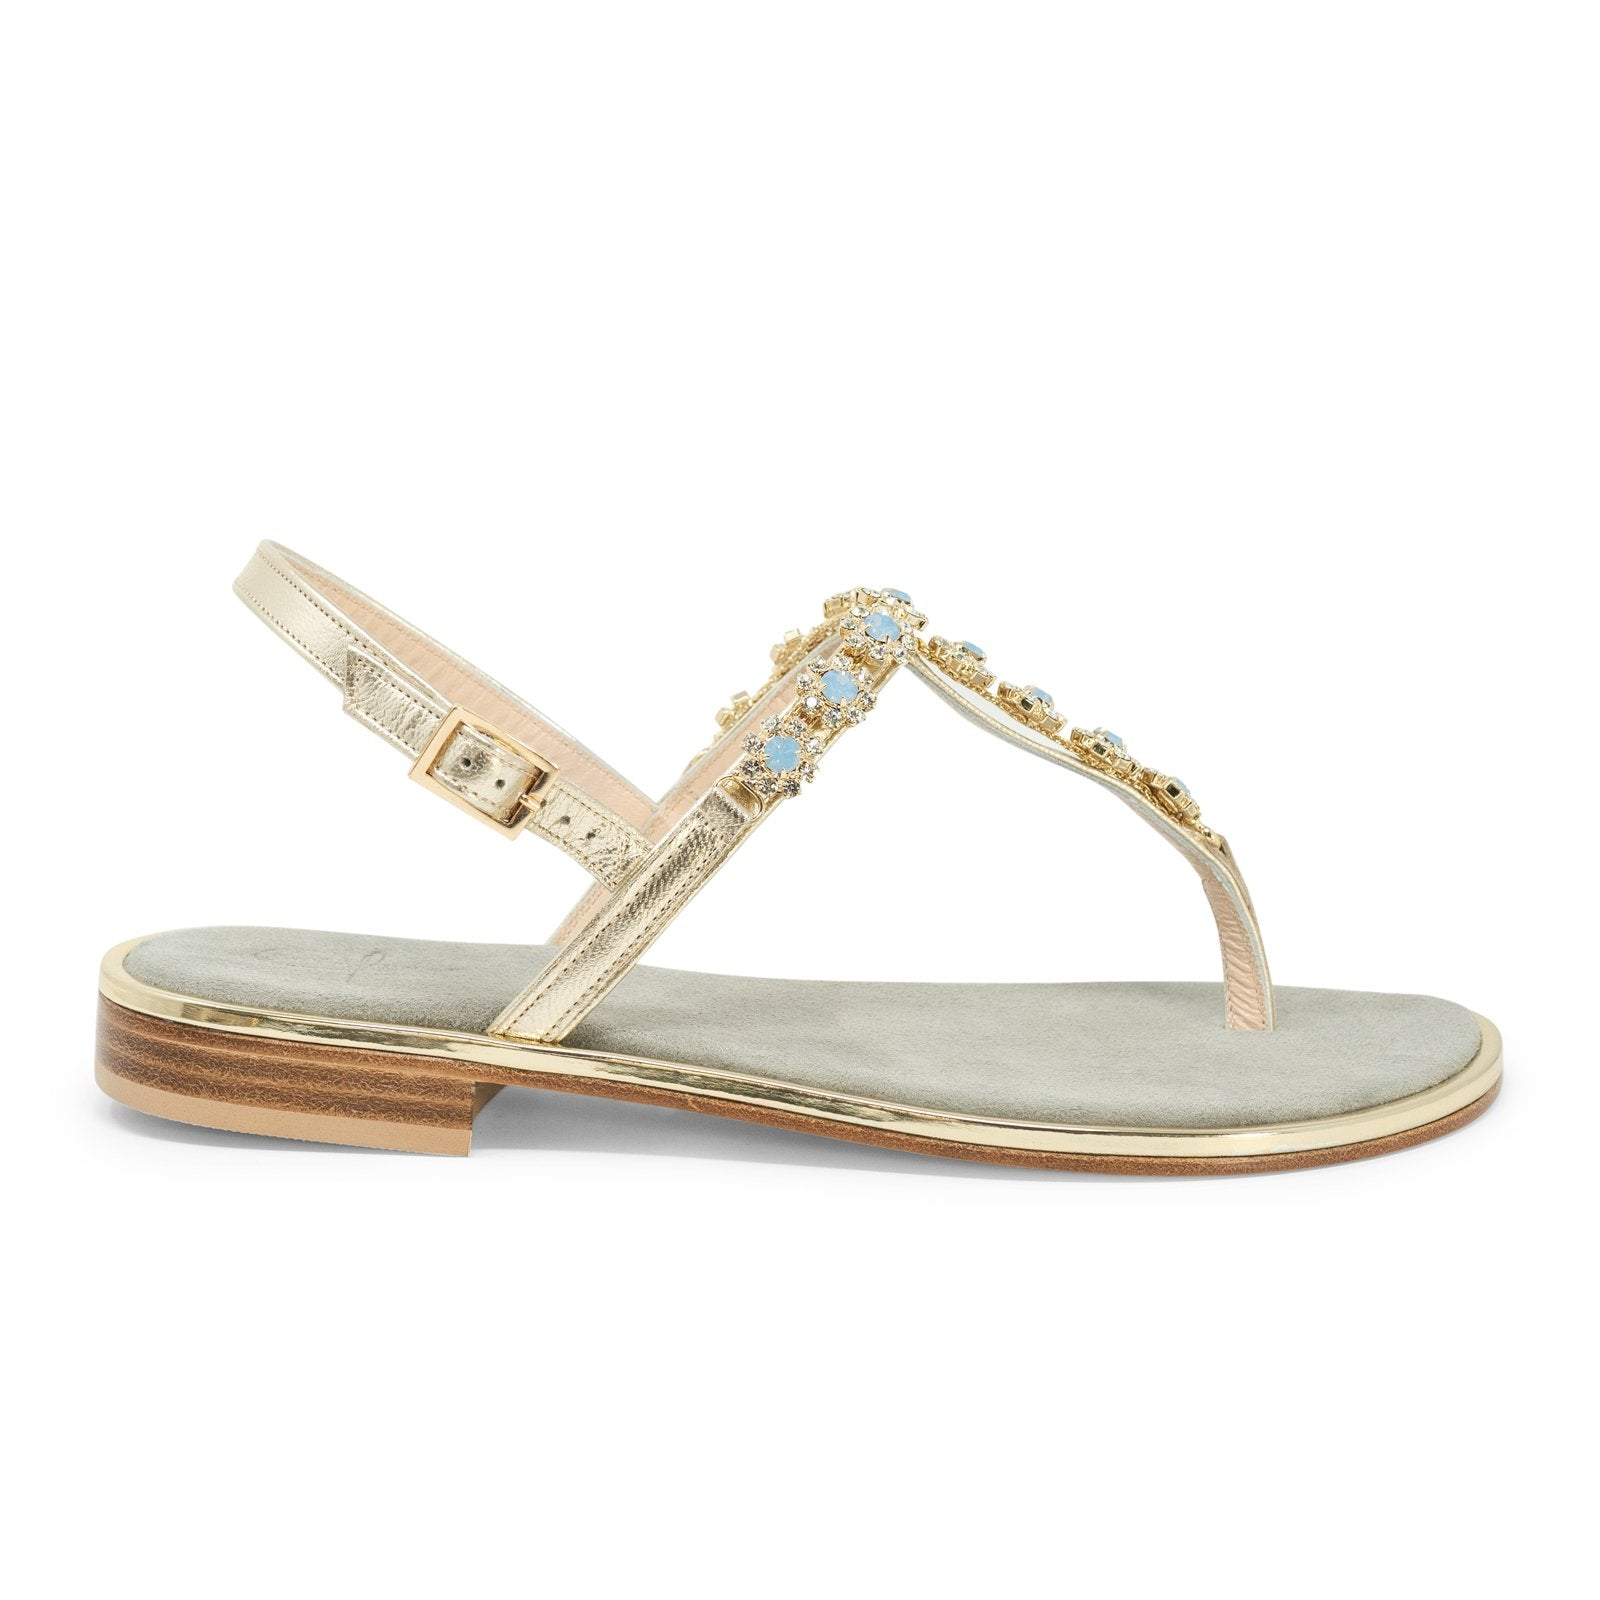 Women's Jewelled Sandals in Platinum - Jennifer Tattanelli